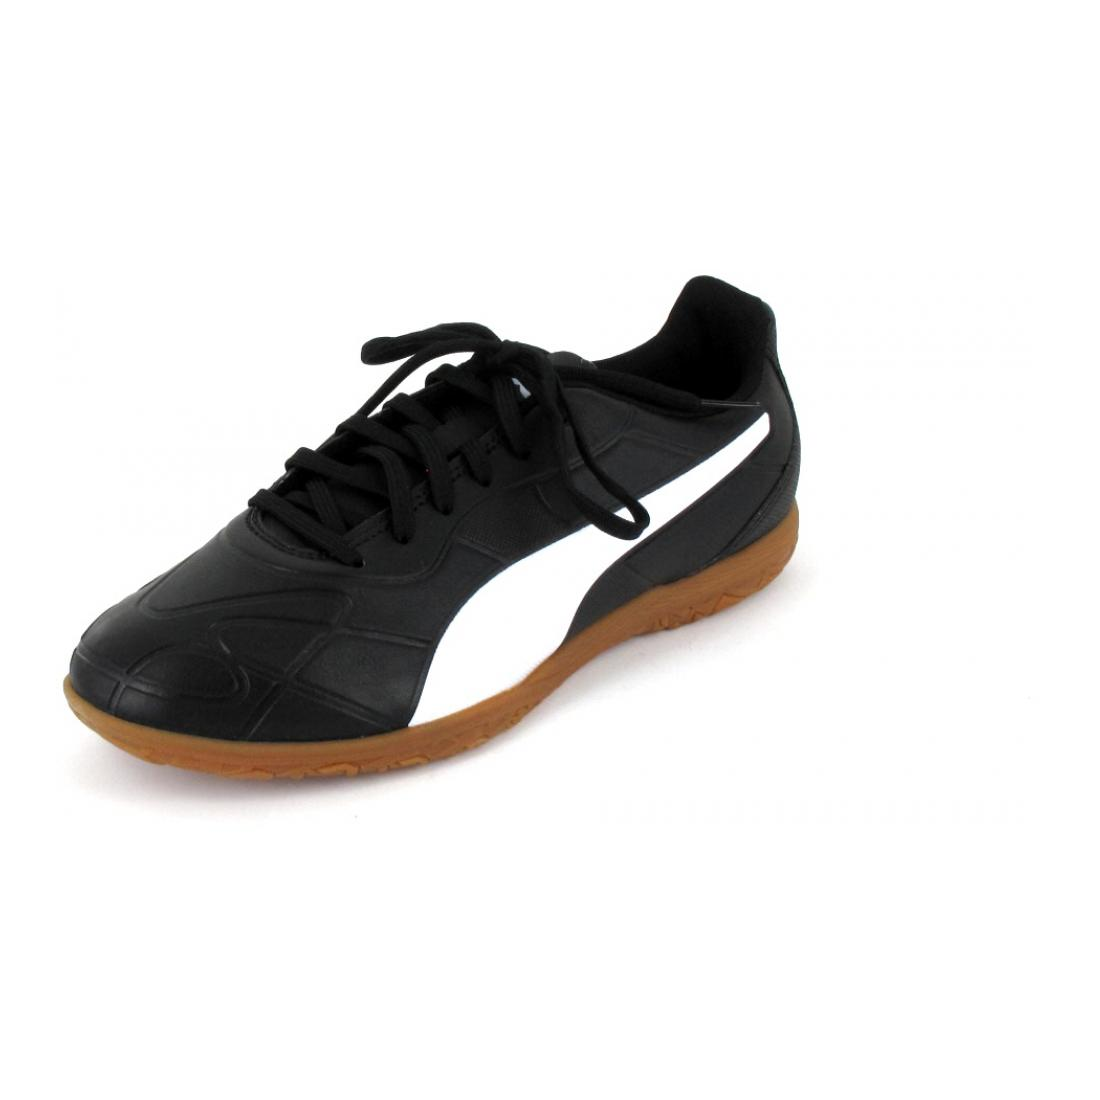 Puma Sportschuh Monarch IT